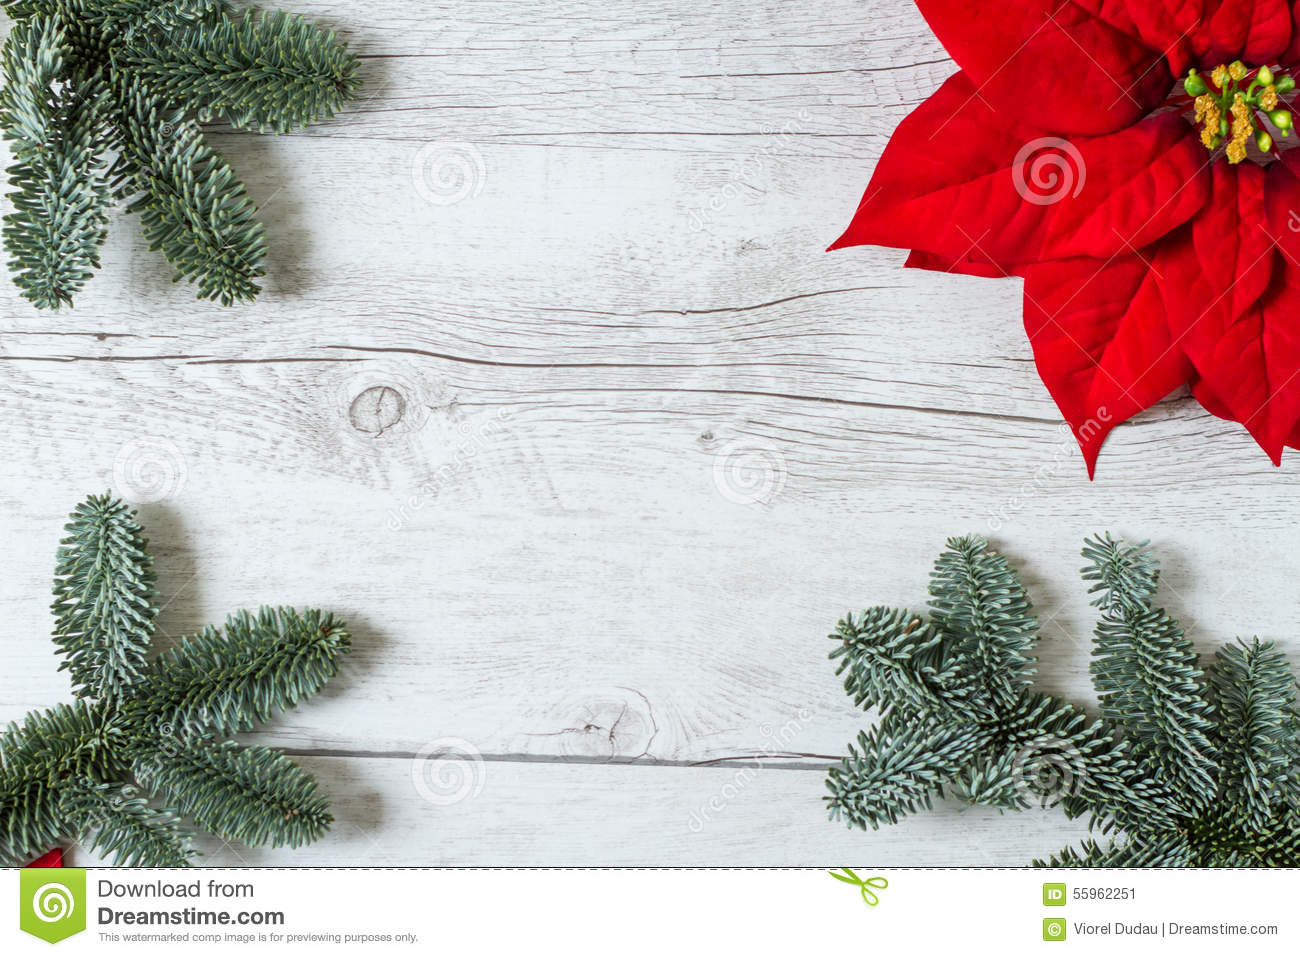 Christmas Background For Greeting Card Stock Image - Image of white ...